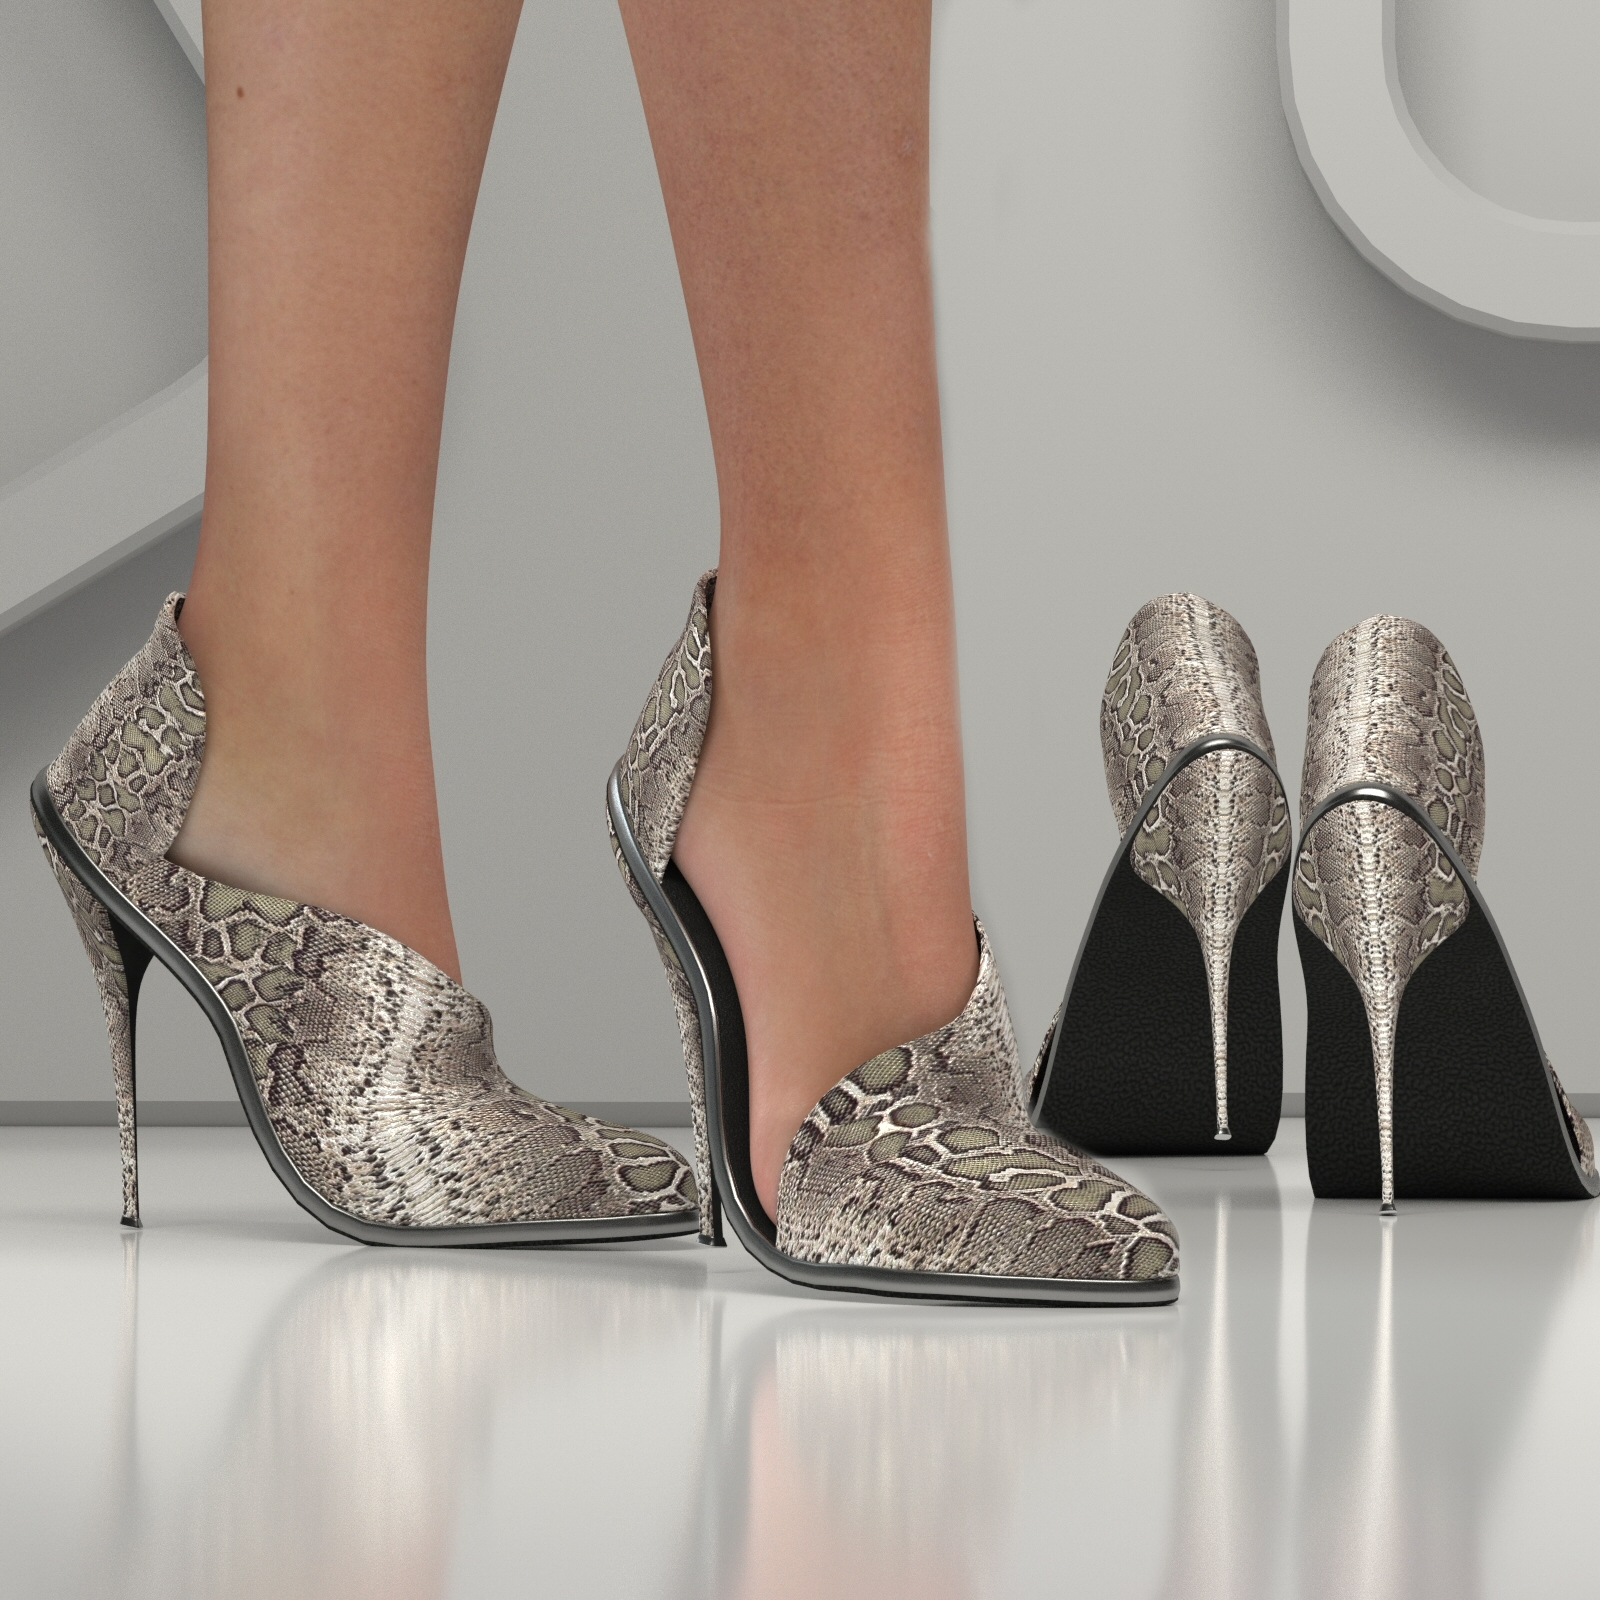 LA POINTED TOE SHOES by RPublishing